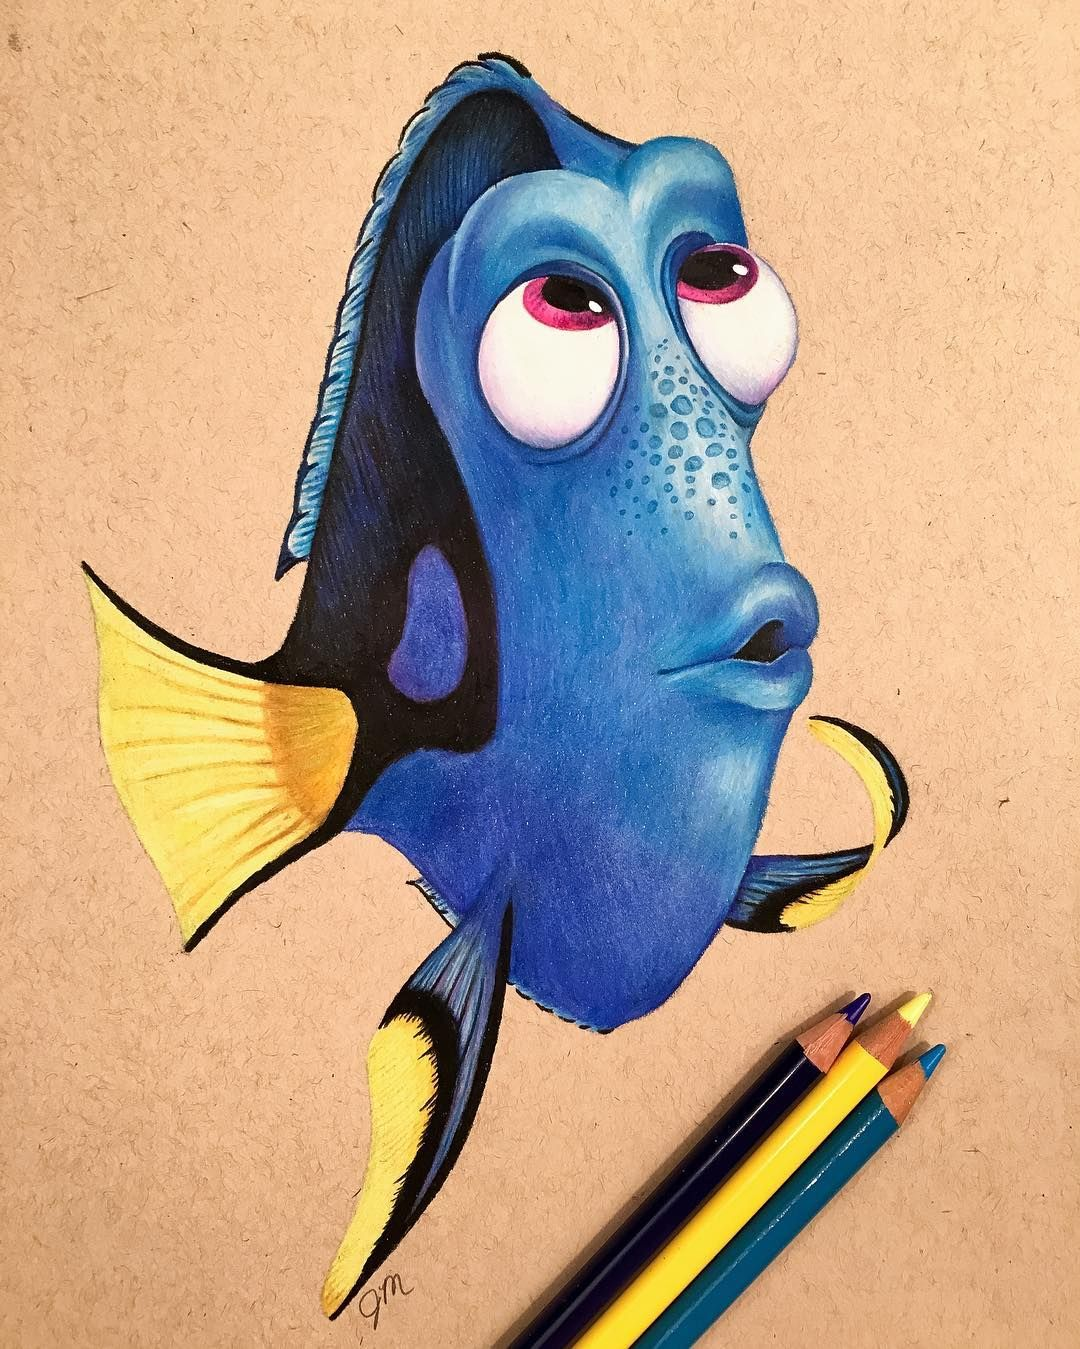 Pencil Drawing Images Cartoons: Excellent Color Pencil Drawings By Julianna Maston